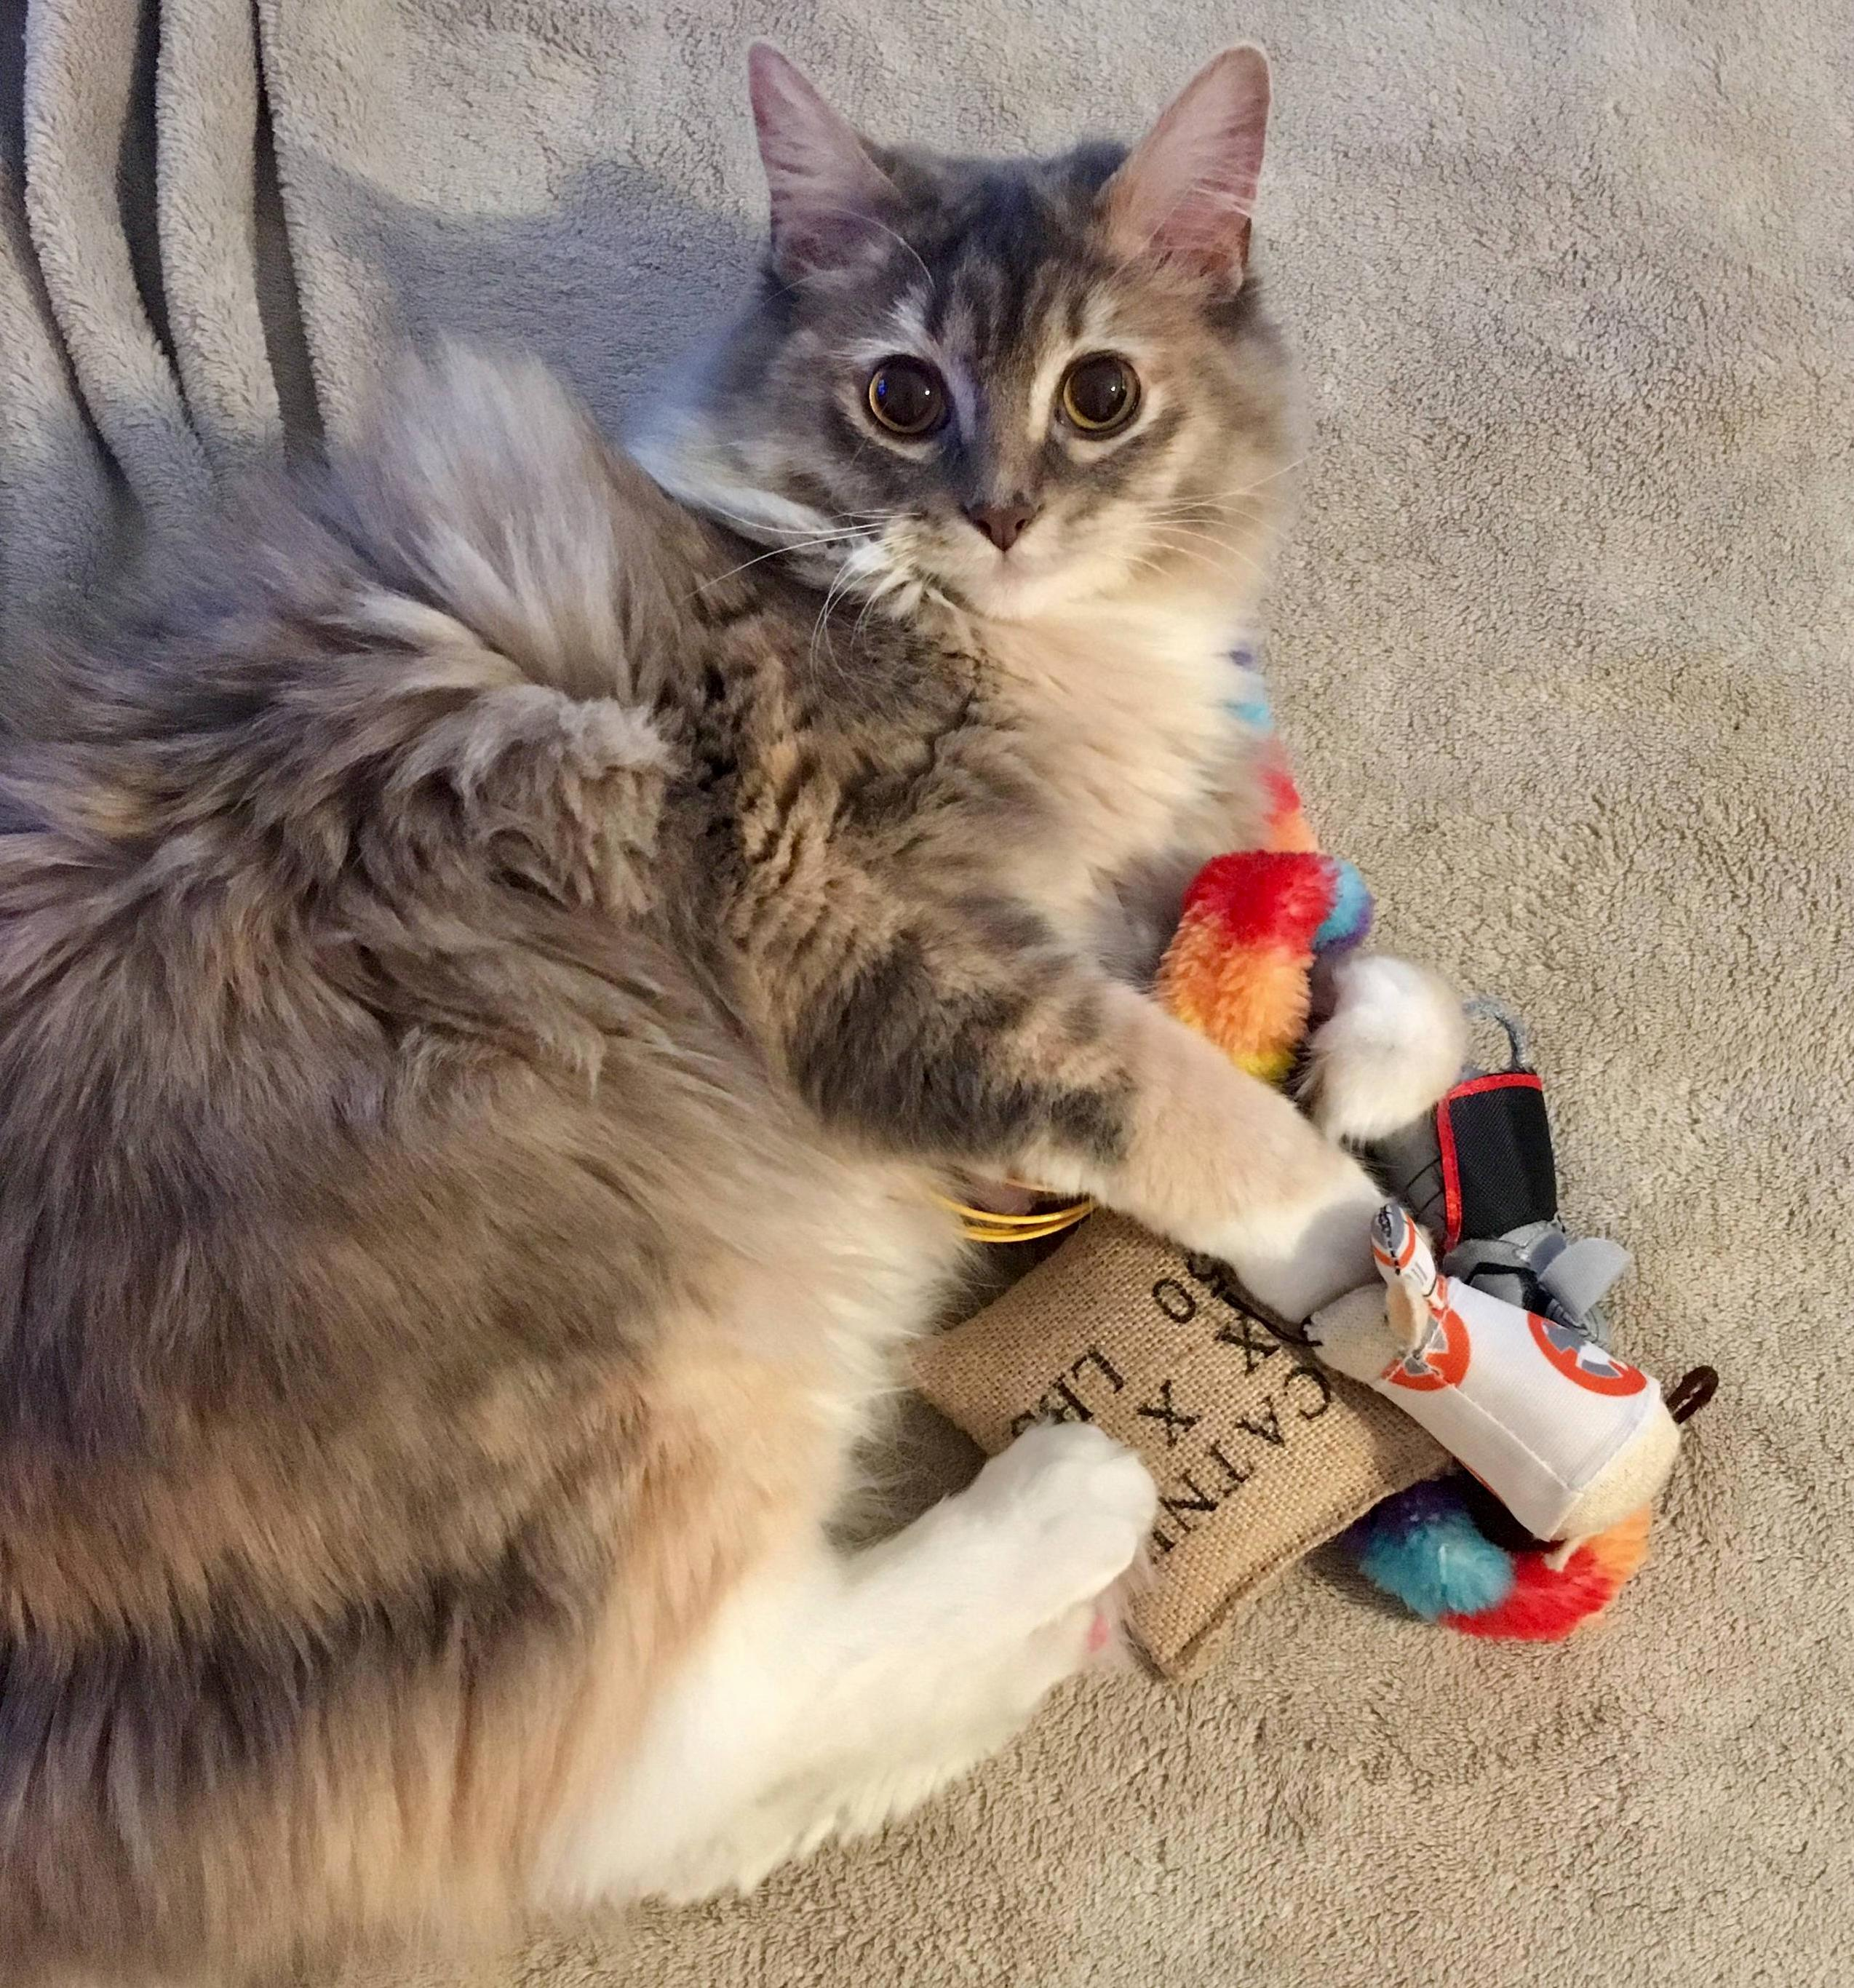 Beef hoarding her toys